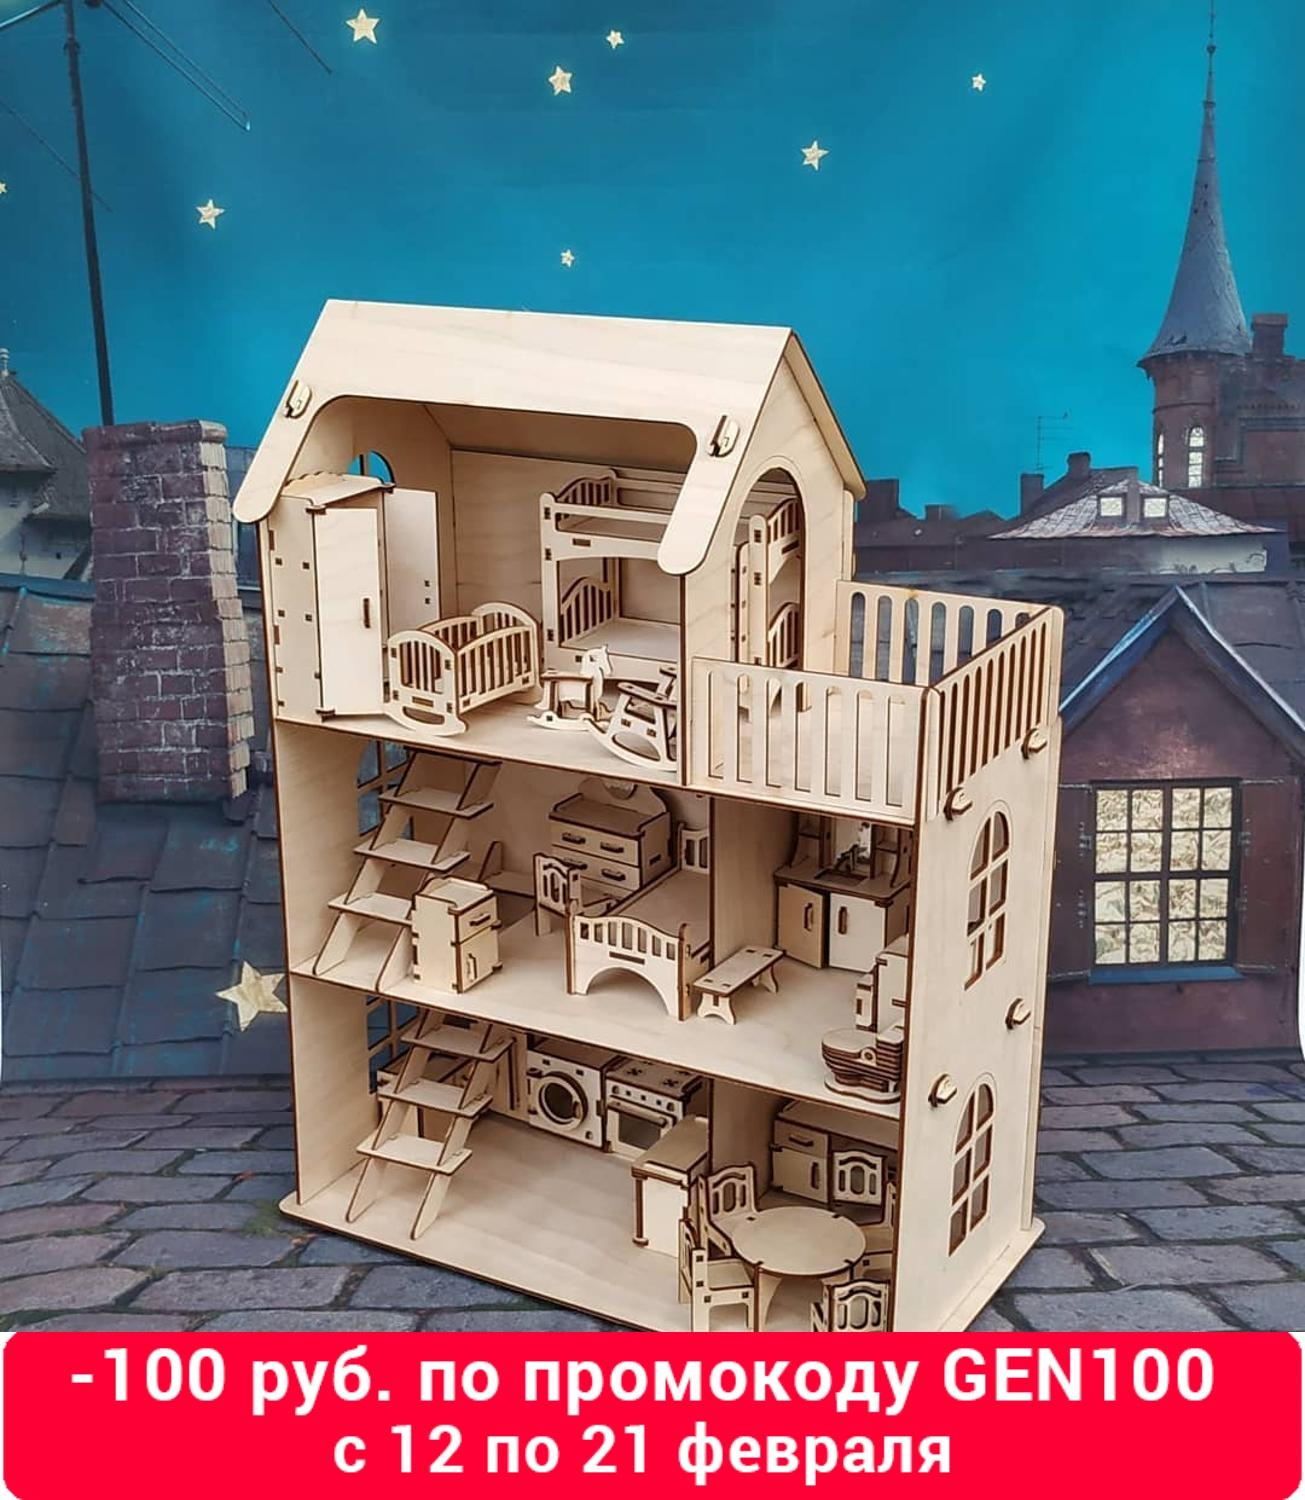 Plywood Doll House Lodge Accessories Miniature Dollhouse For Children For Girls Educational Toys For Children